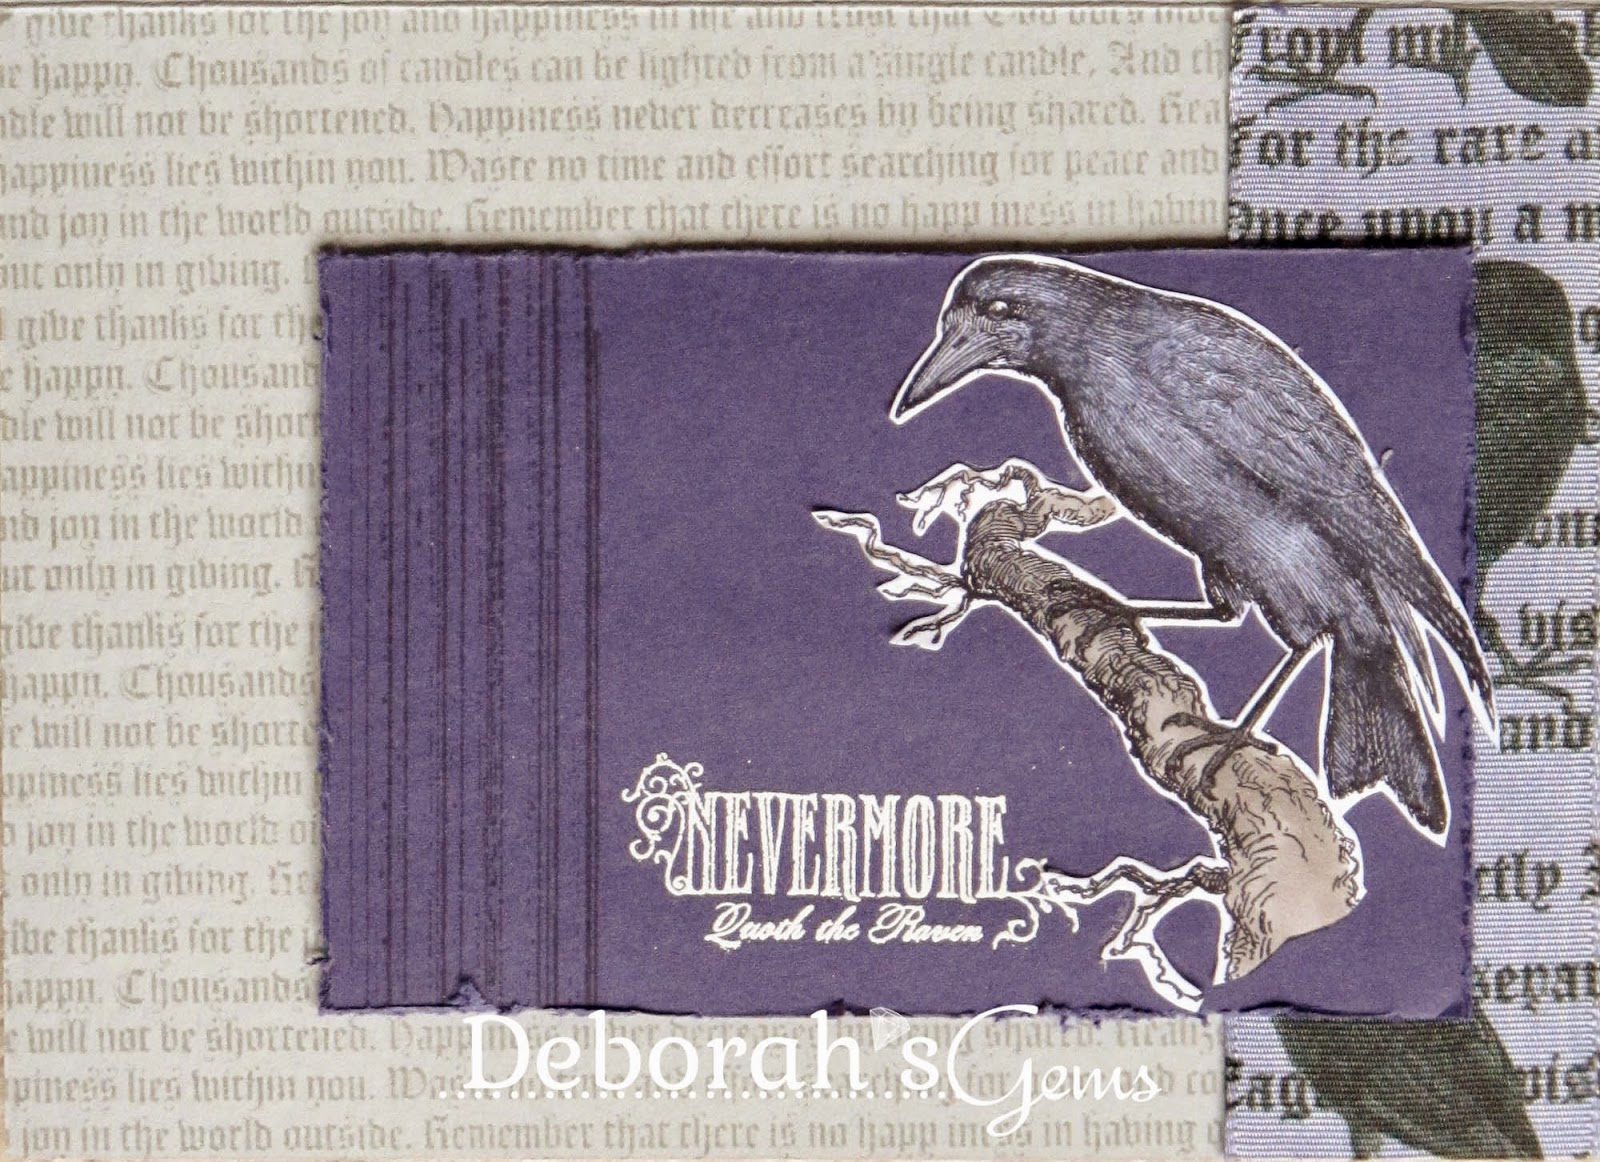 Nevermore - photo by Deborah Frings - Deborah's Gems